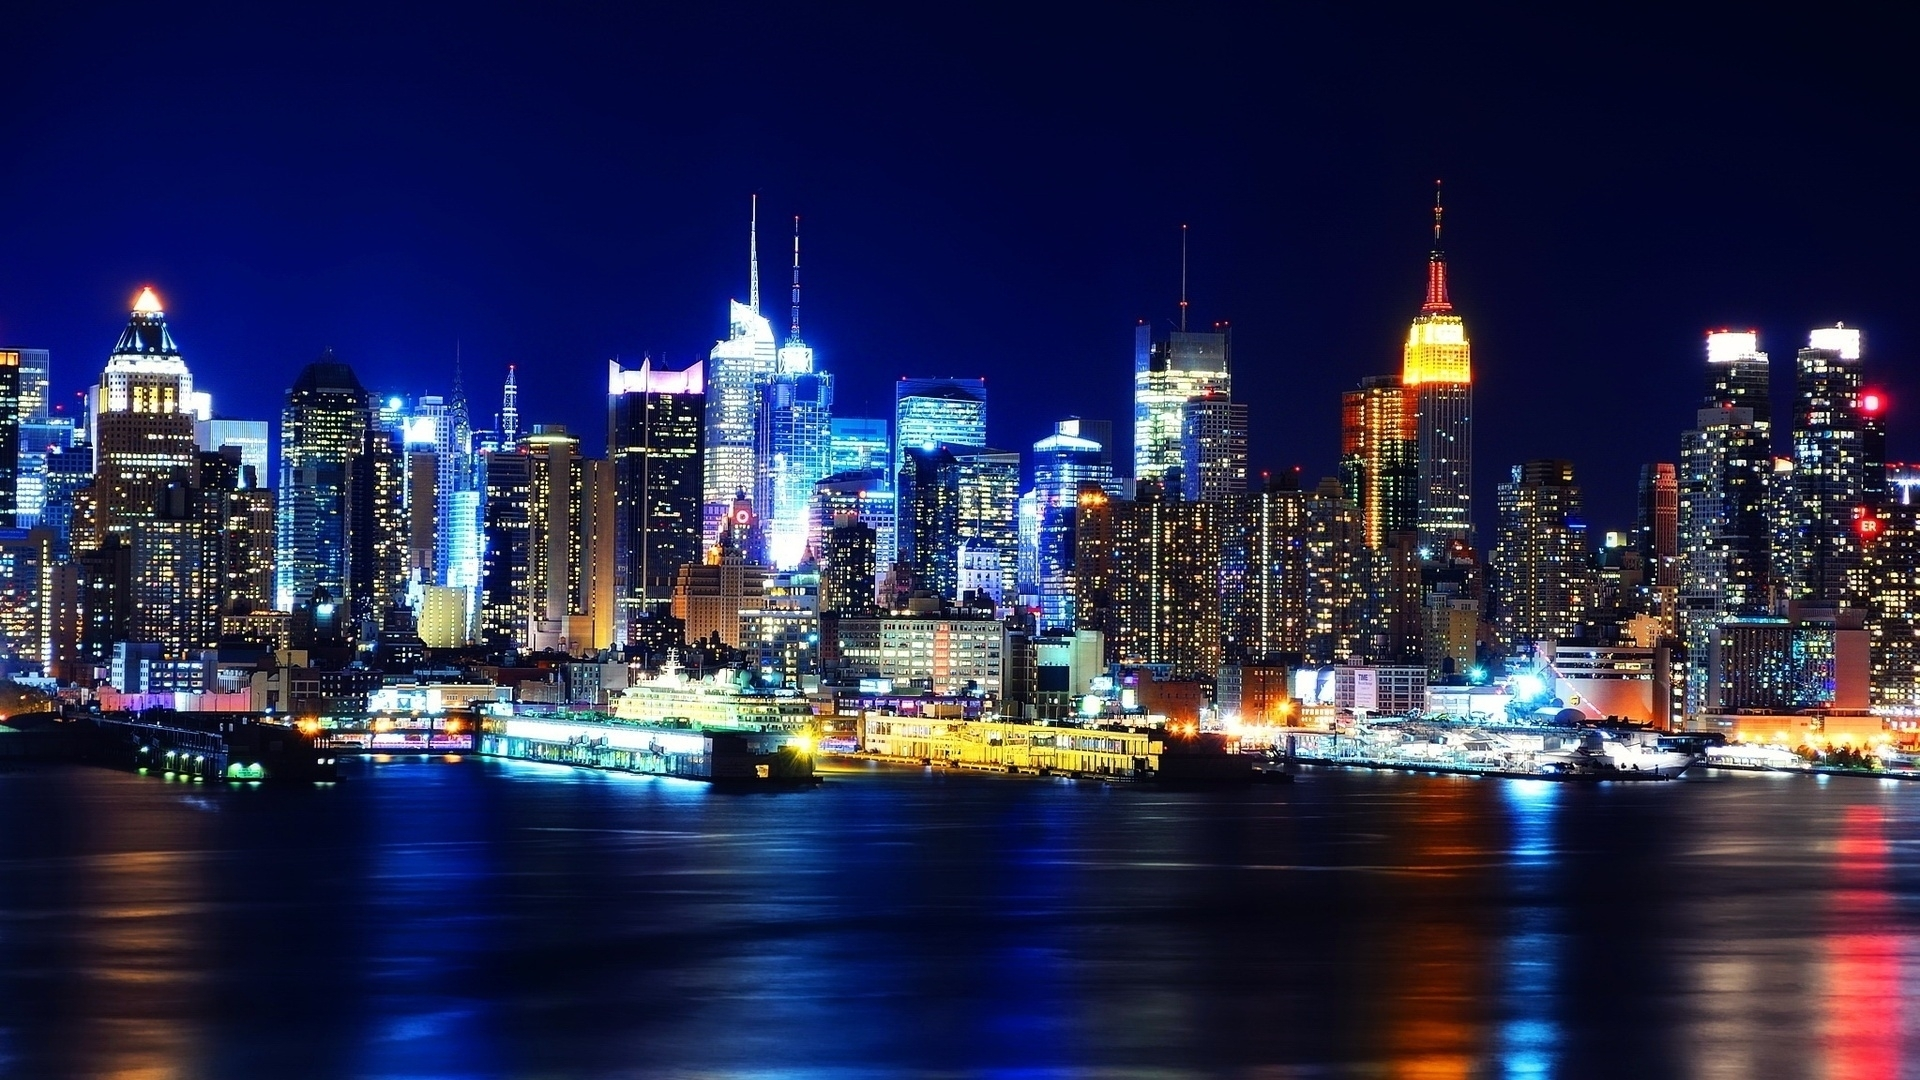 full hd 1080p new york wallpapers hd, desktop backgrounds | images